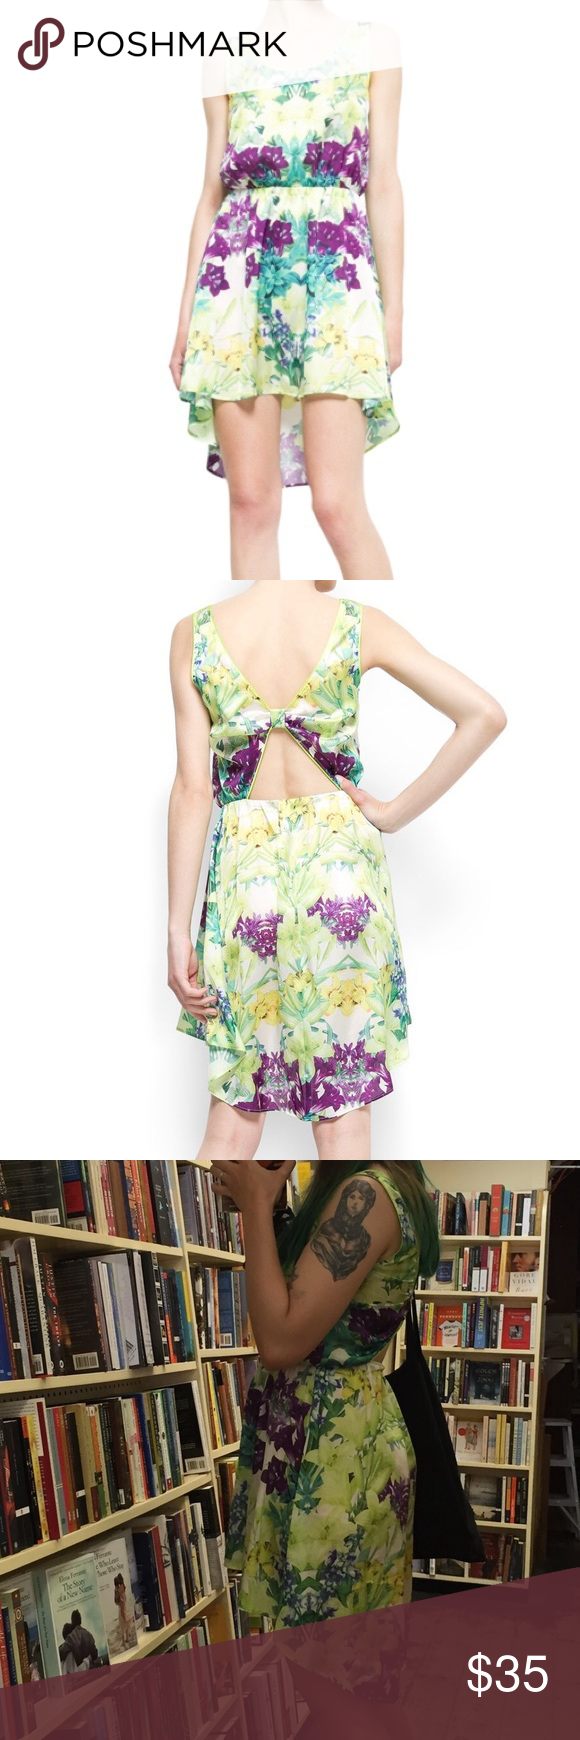 Mango Floral Print Tail Hem Dress, Green Multi Lovely summer dress in great condition, I wore it twice only. This casual Mango dress is perfect for lazy summer days. It has a relaxed shape with a round neckline, wide shoulder straps and a bold floral print design, as well as a tail back hem and elastic waistband. Material: 100% viscose; Sleeveless; Washing Instructions: Machine washable. Mango Dresses Asymmetrical